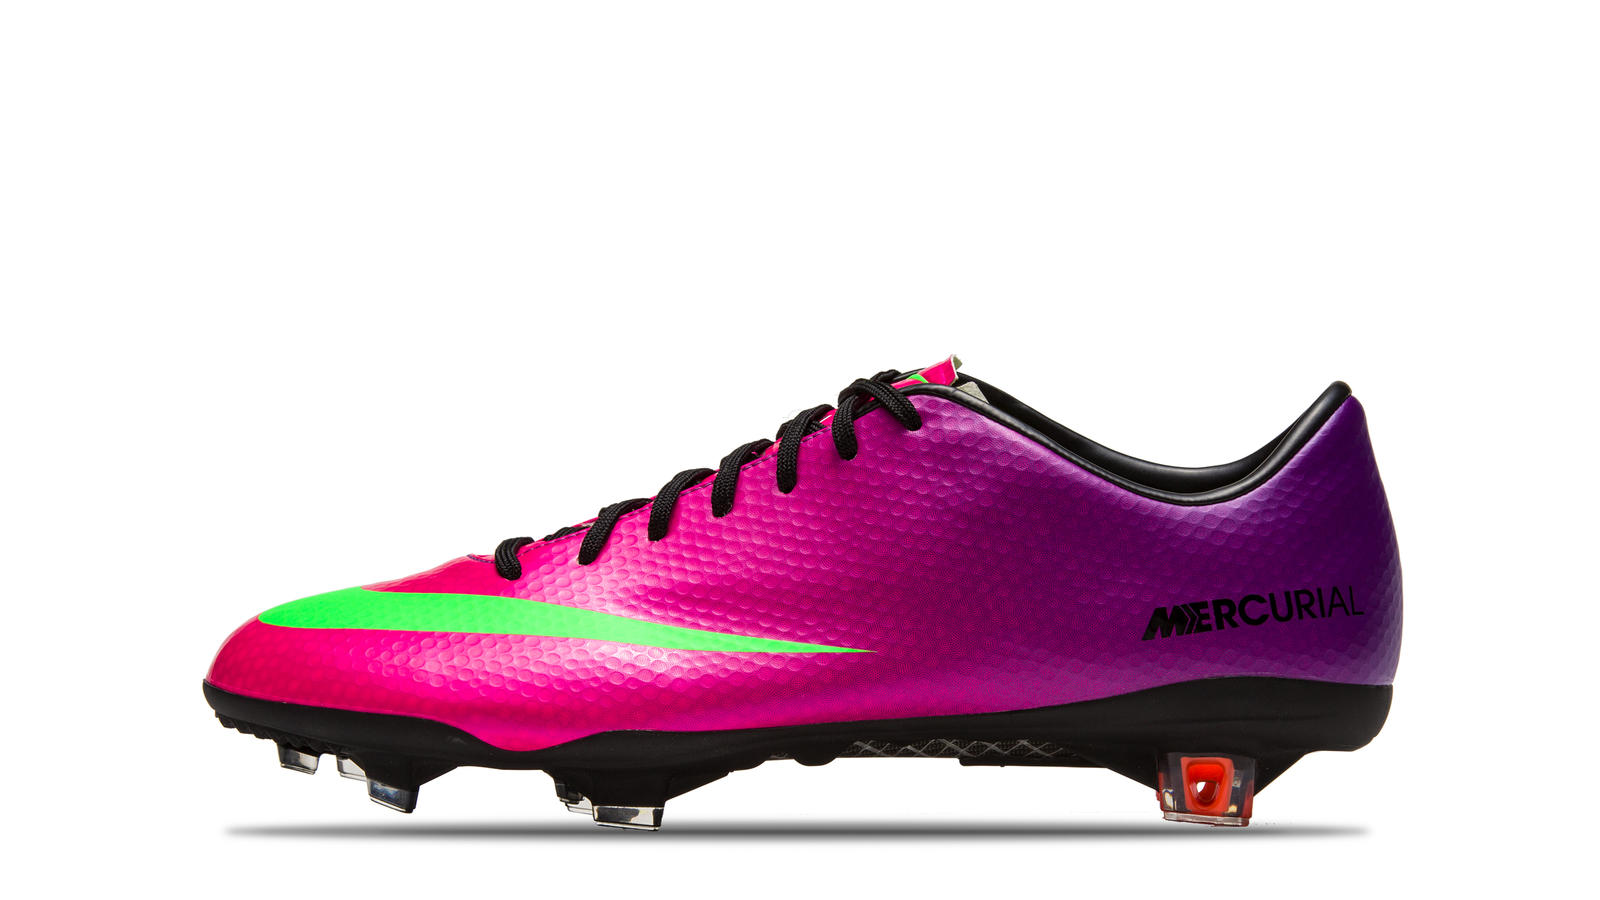 2013 Mercurial Vapor IX Fireberry Electric Green RD PLM